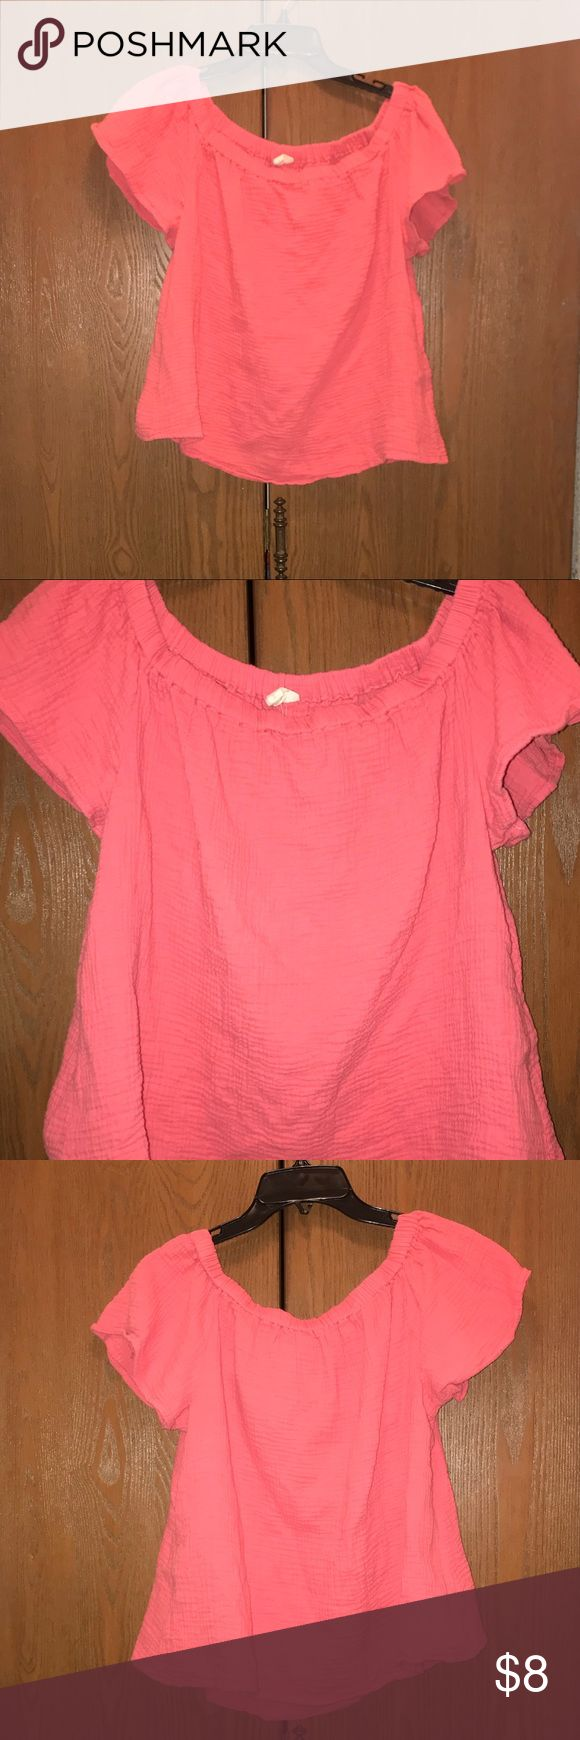 Off The Shoulder Top A DIV salmon colored, off the shoulders top. Pre Loved Cotton material with some texture.  Flowy, ruffled sleeves that stretch over your shoulders.  Cute with high waisted shorts or jeans. A DIV Tops Crop Tops